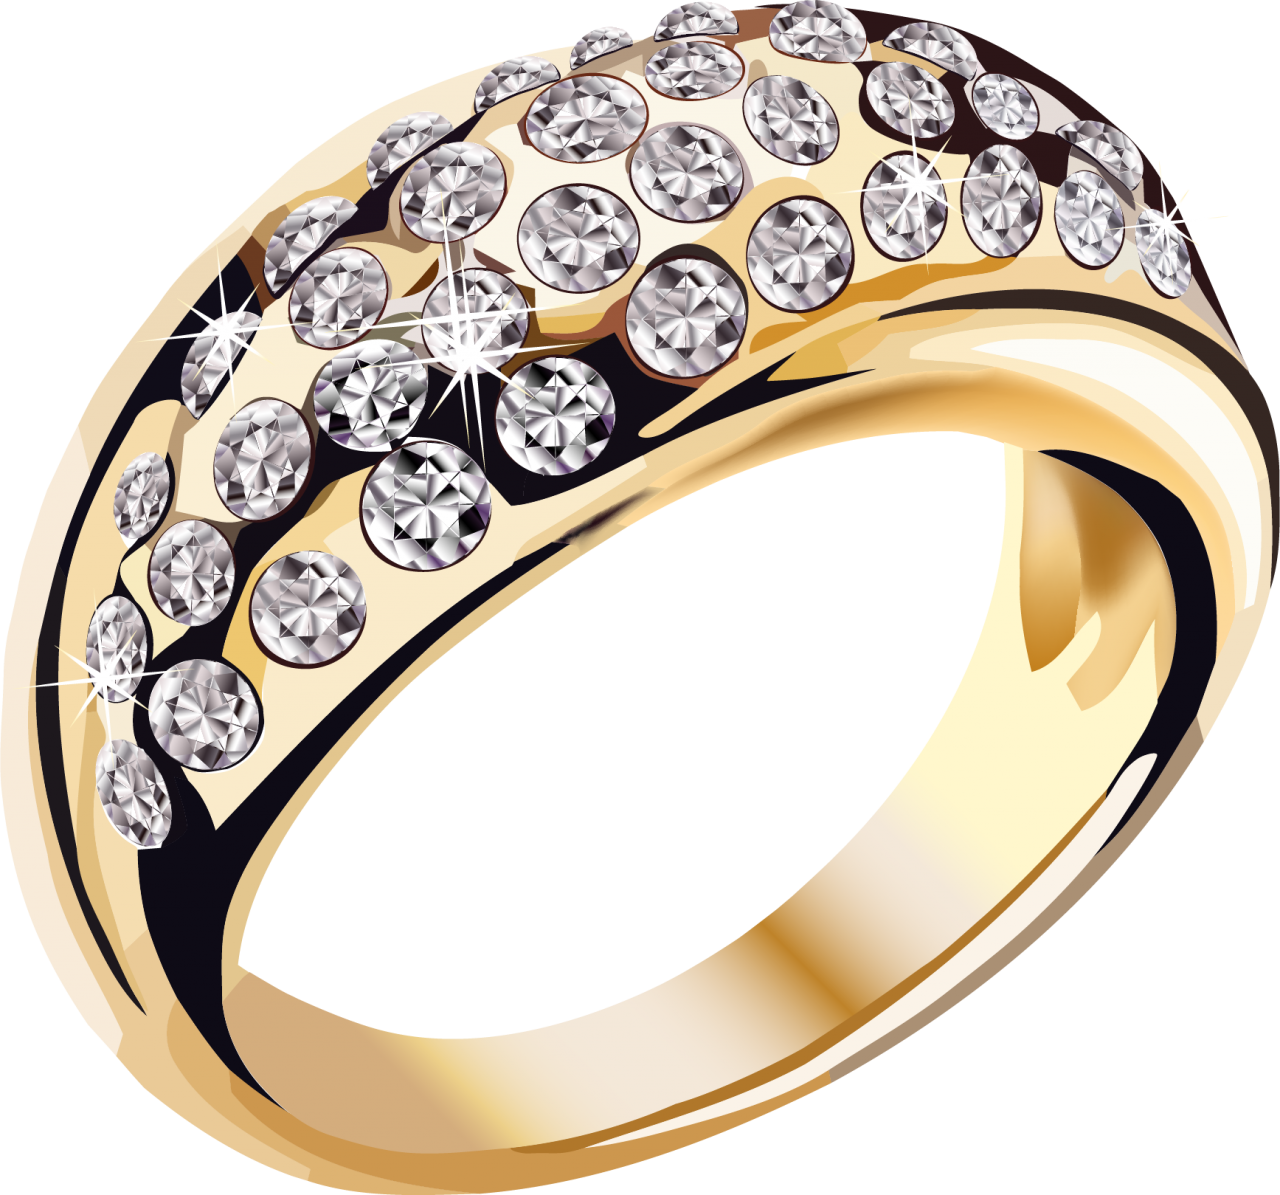 Gold Ring PNG Image